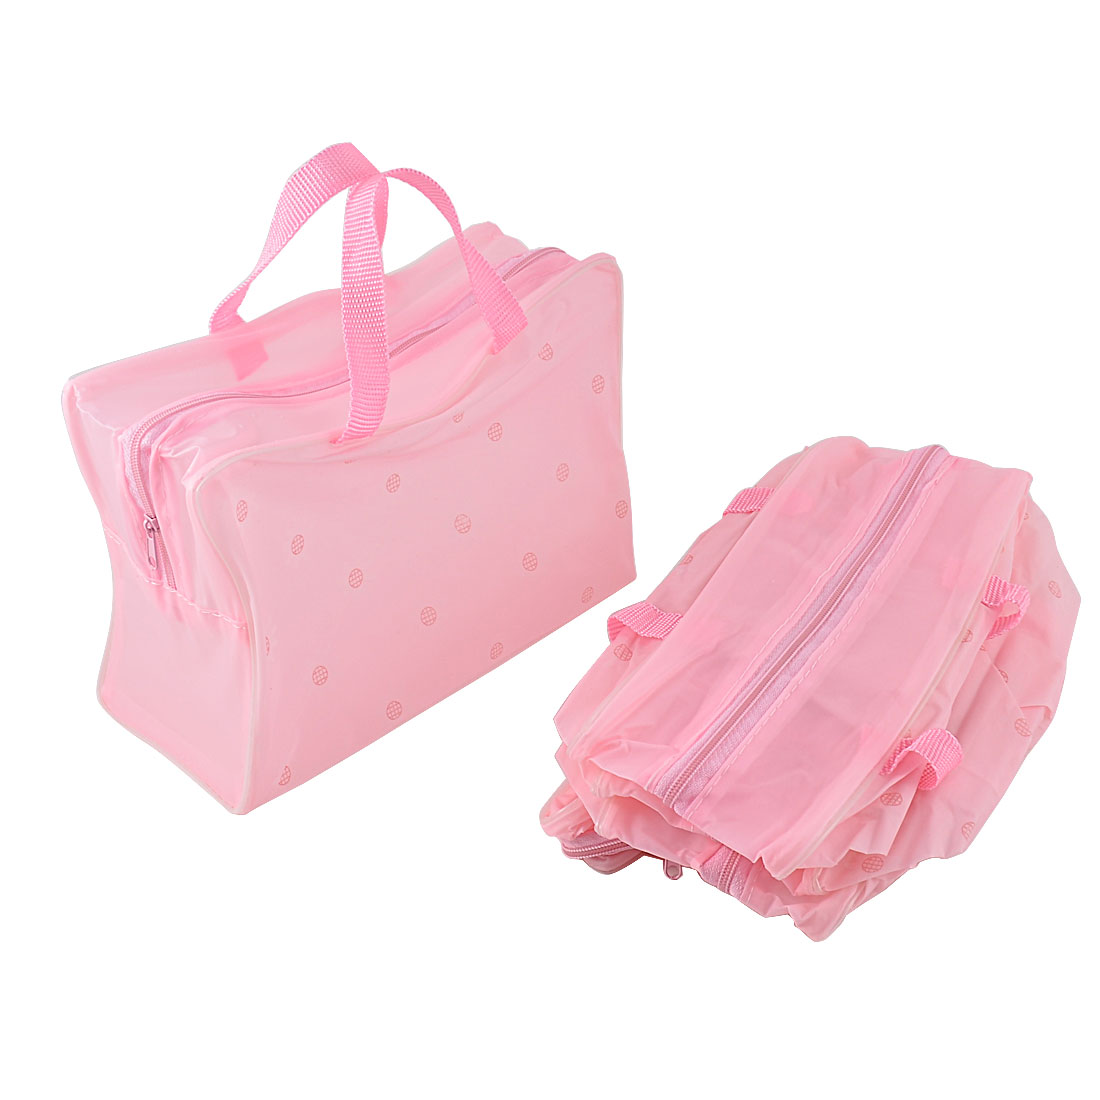 Travel Portable Soft Plastic Frame Flowers Print Bathing Shower Makeup Cosmetic Bags Toiletry Pouch Case 5pcs Pink